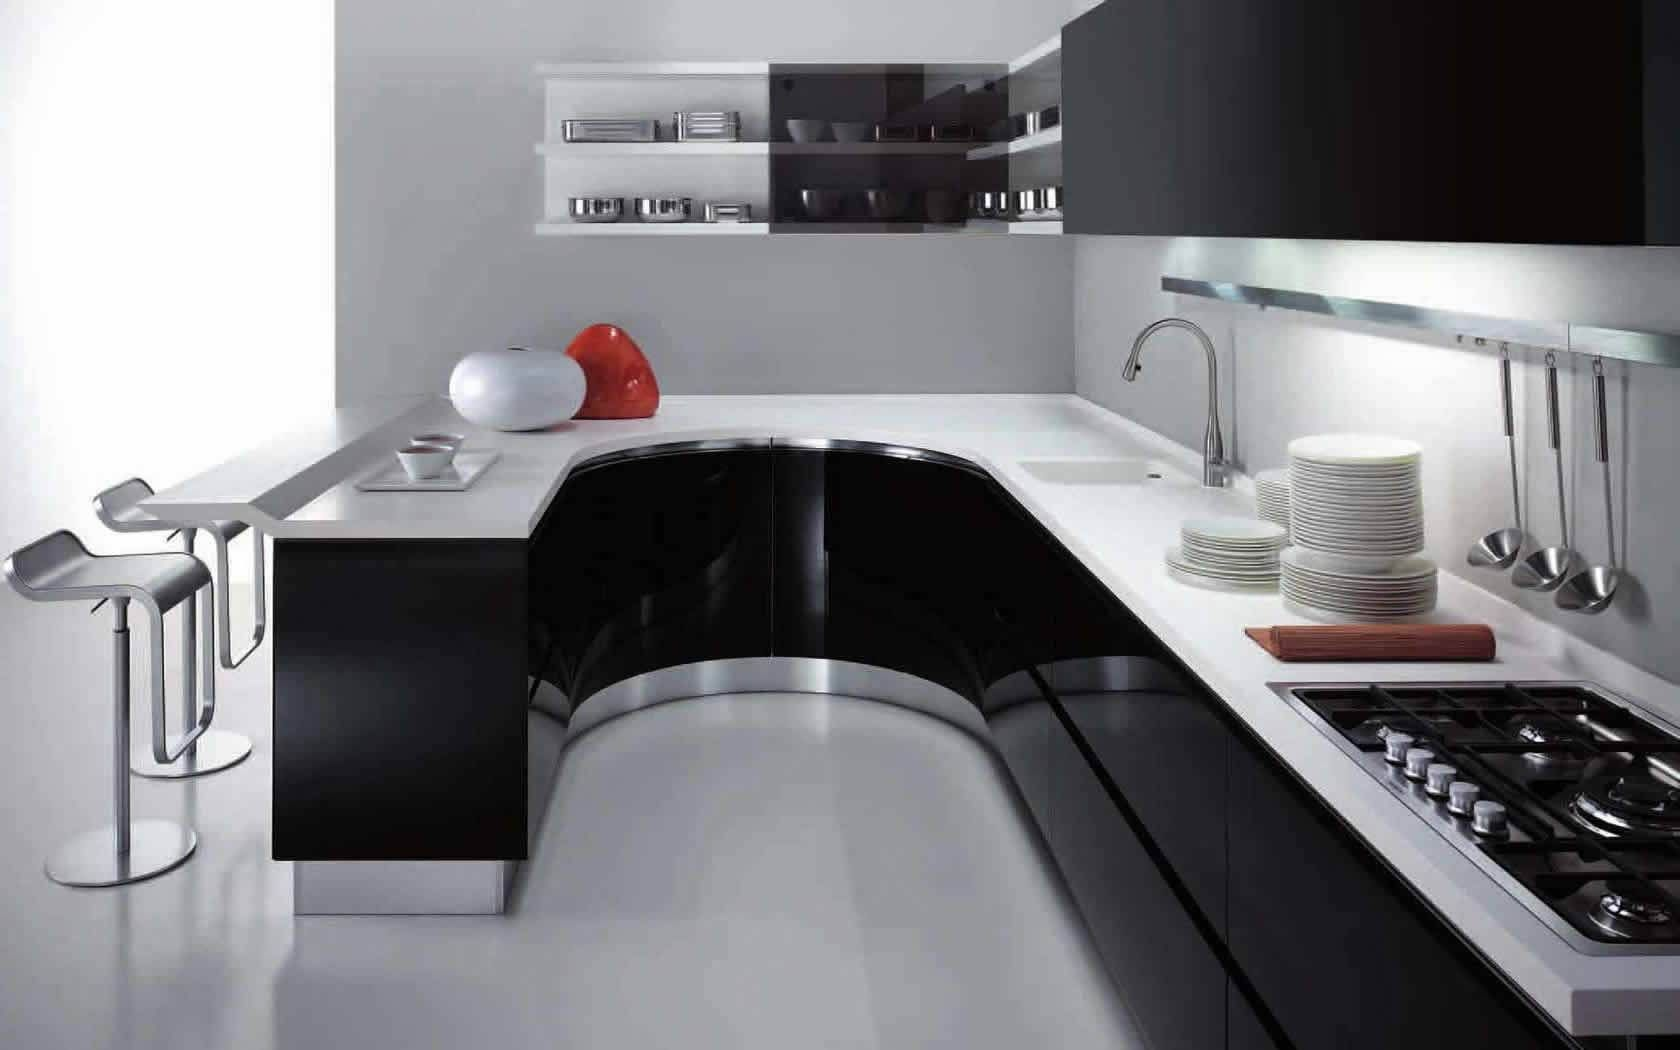 How to shop for modular kitchen appliances and accessories online ...